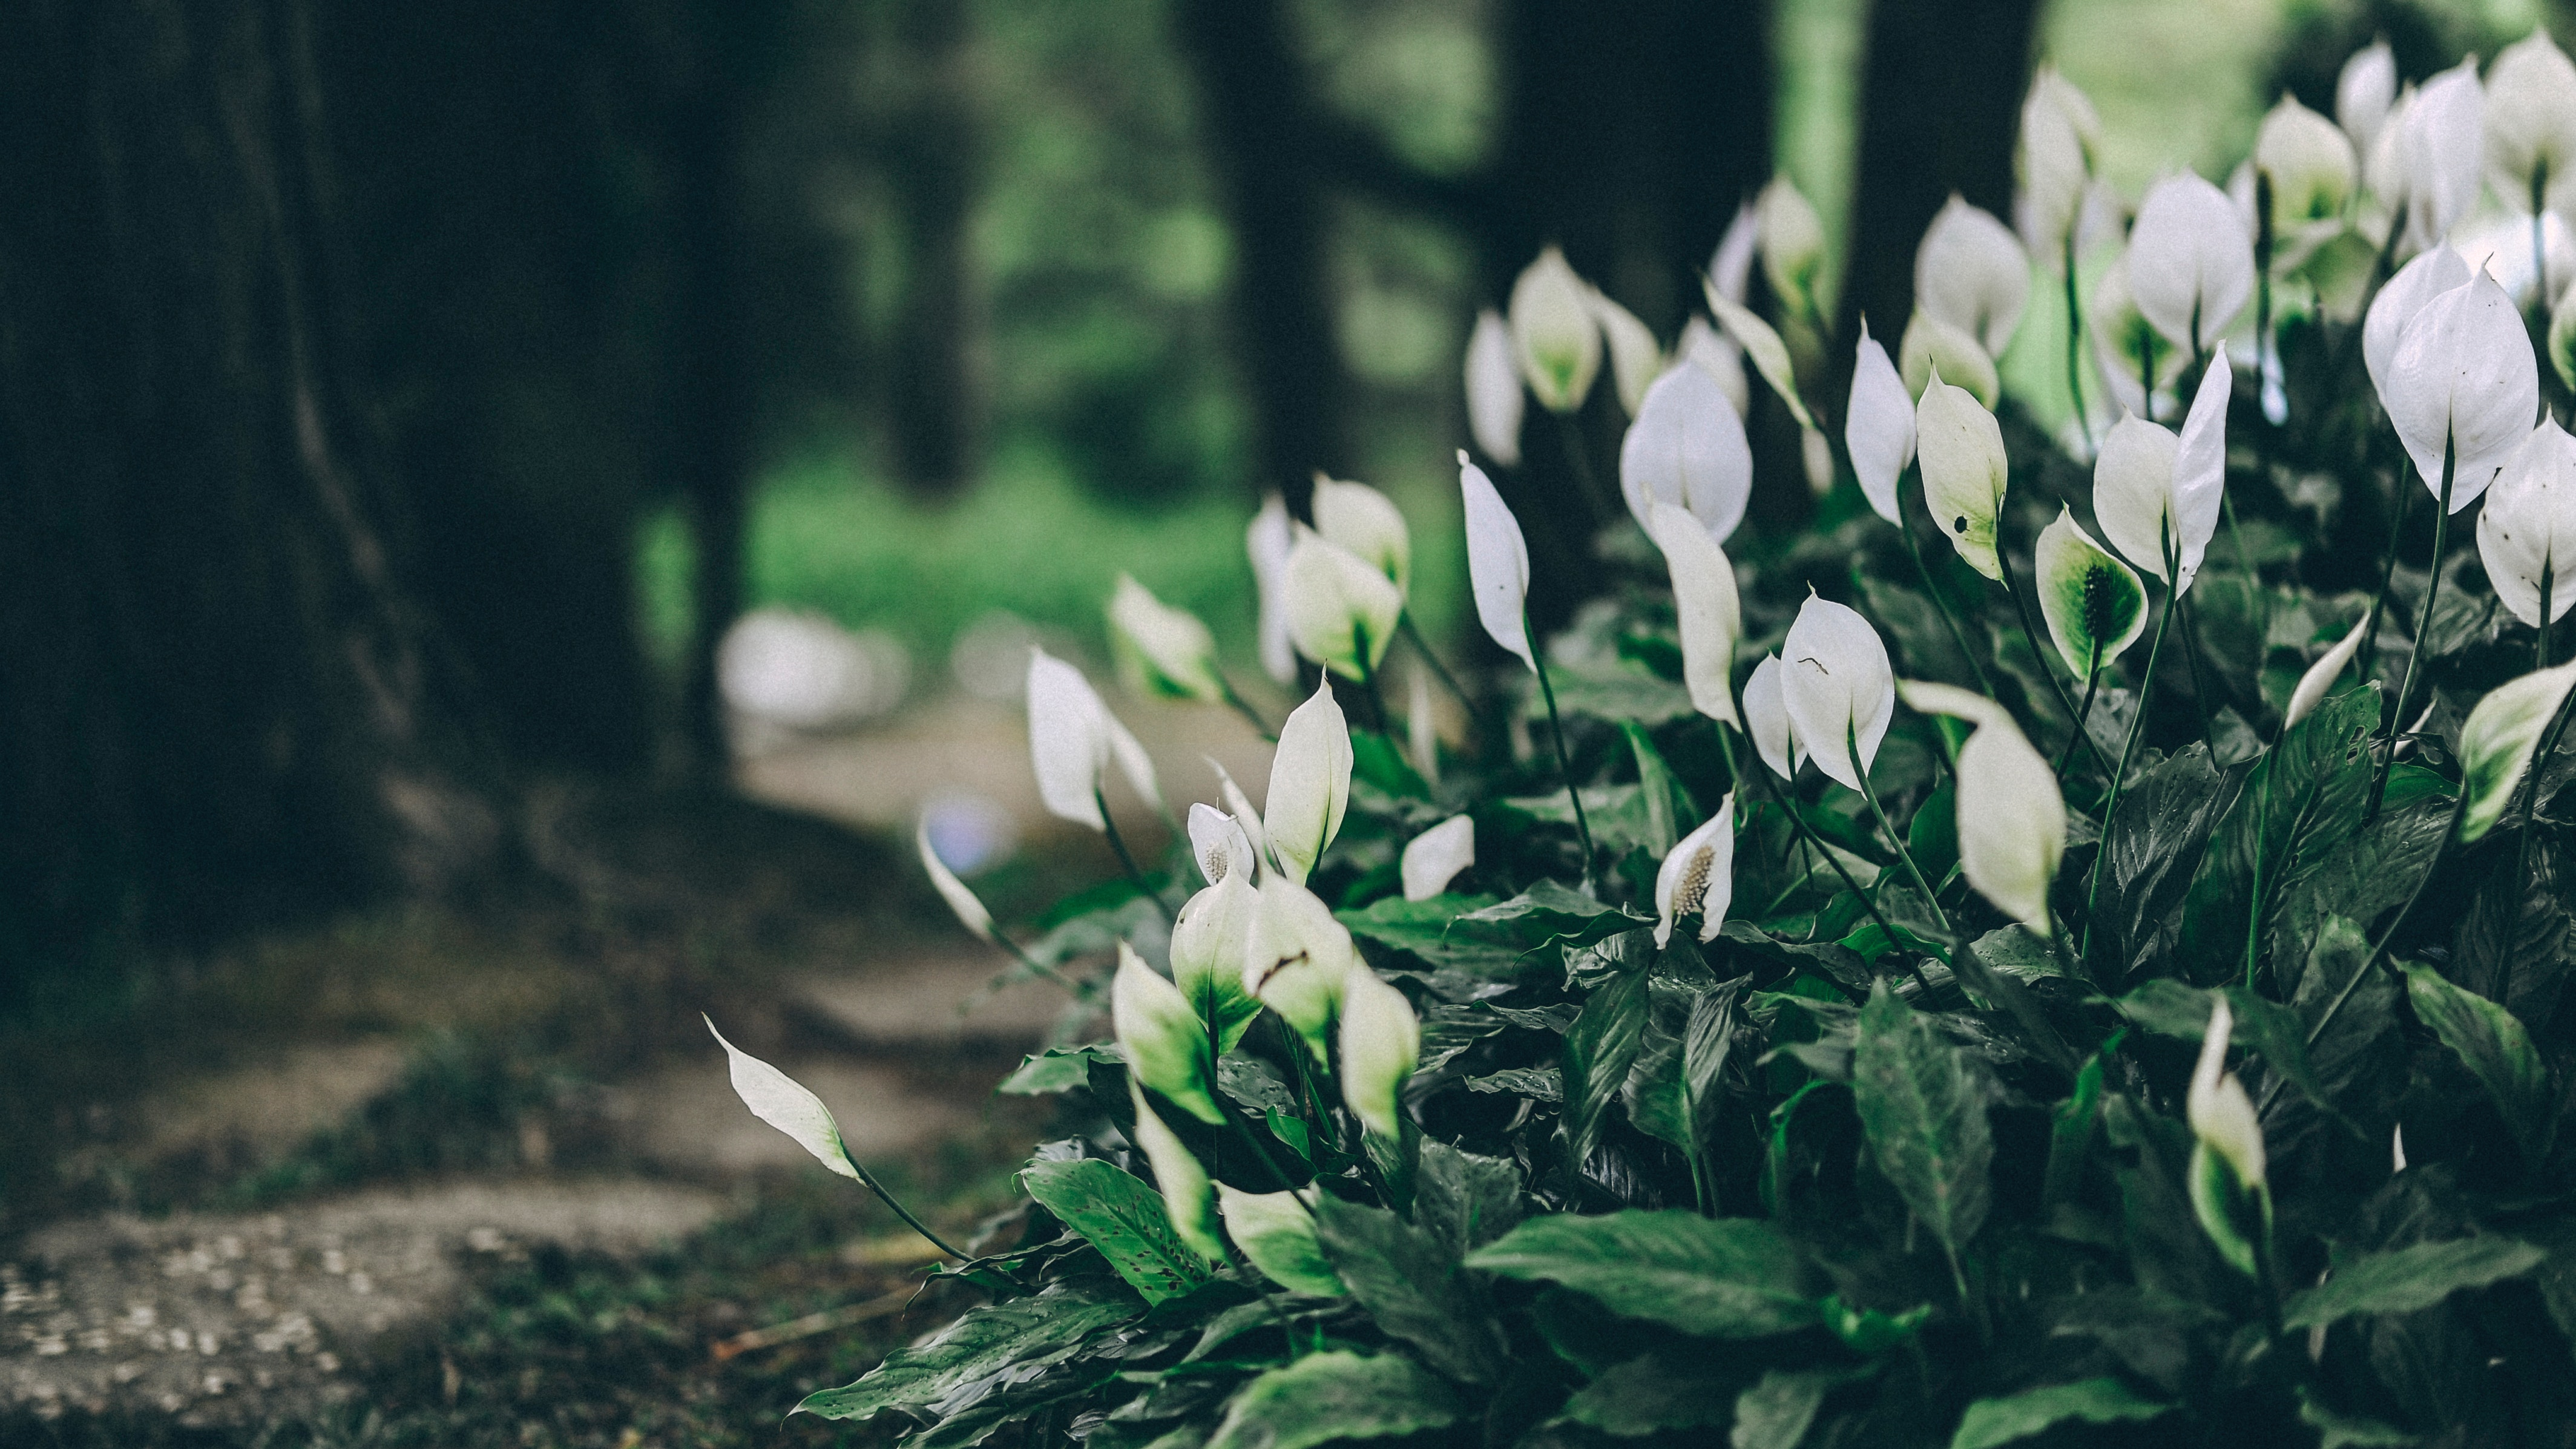 White Anthorium Flowers Near Brown Soil in Tilt Shift Lens Photography, Park, Petals, Outdoors, Nature, HQ Photo